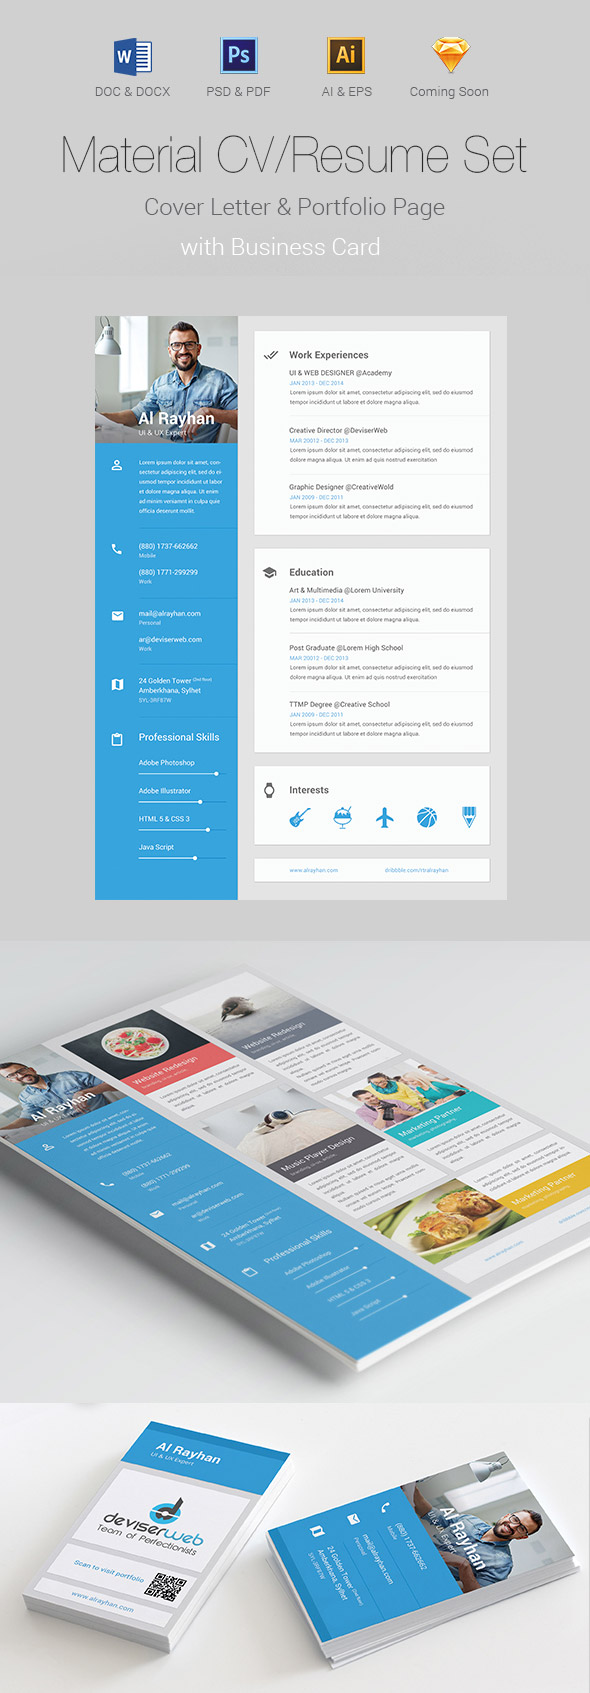 indesign version template cv